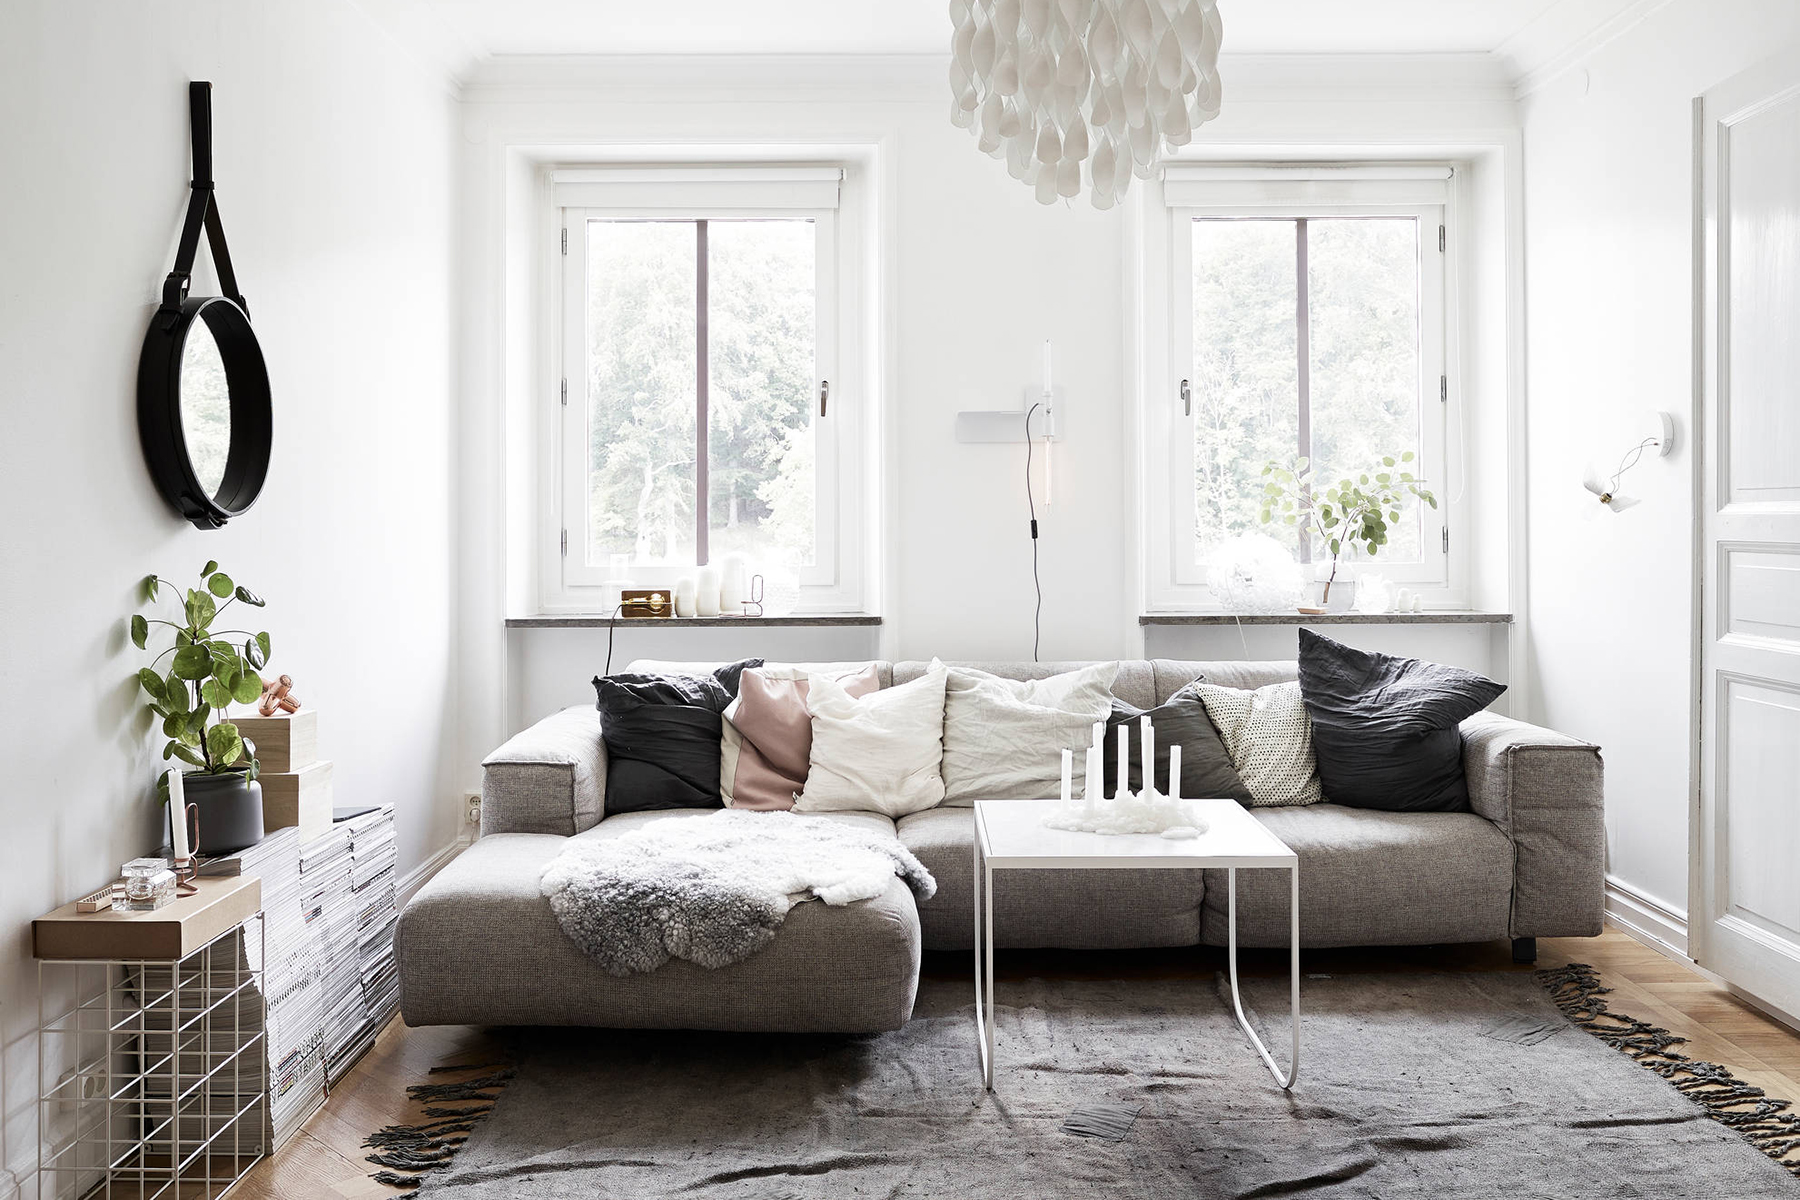 top 10 tips for adding scandinavian style to your home | happy